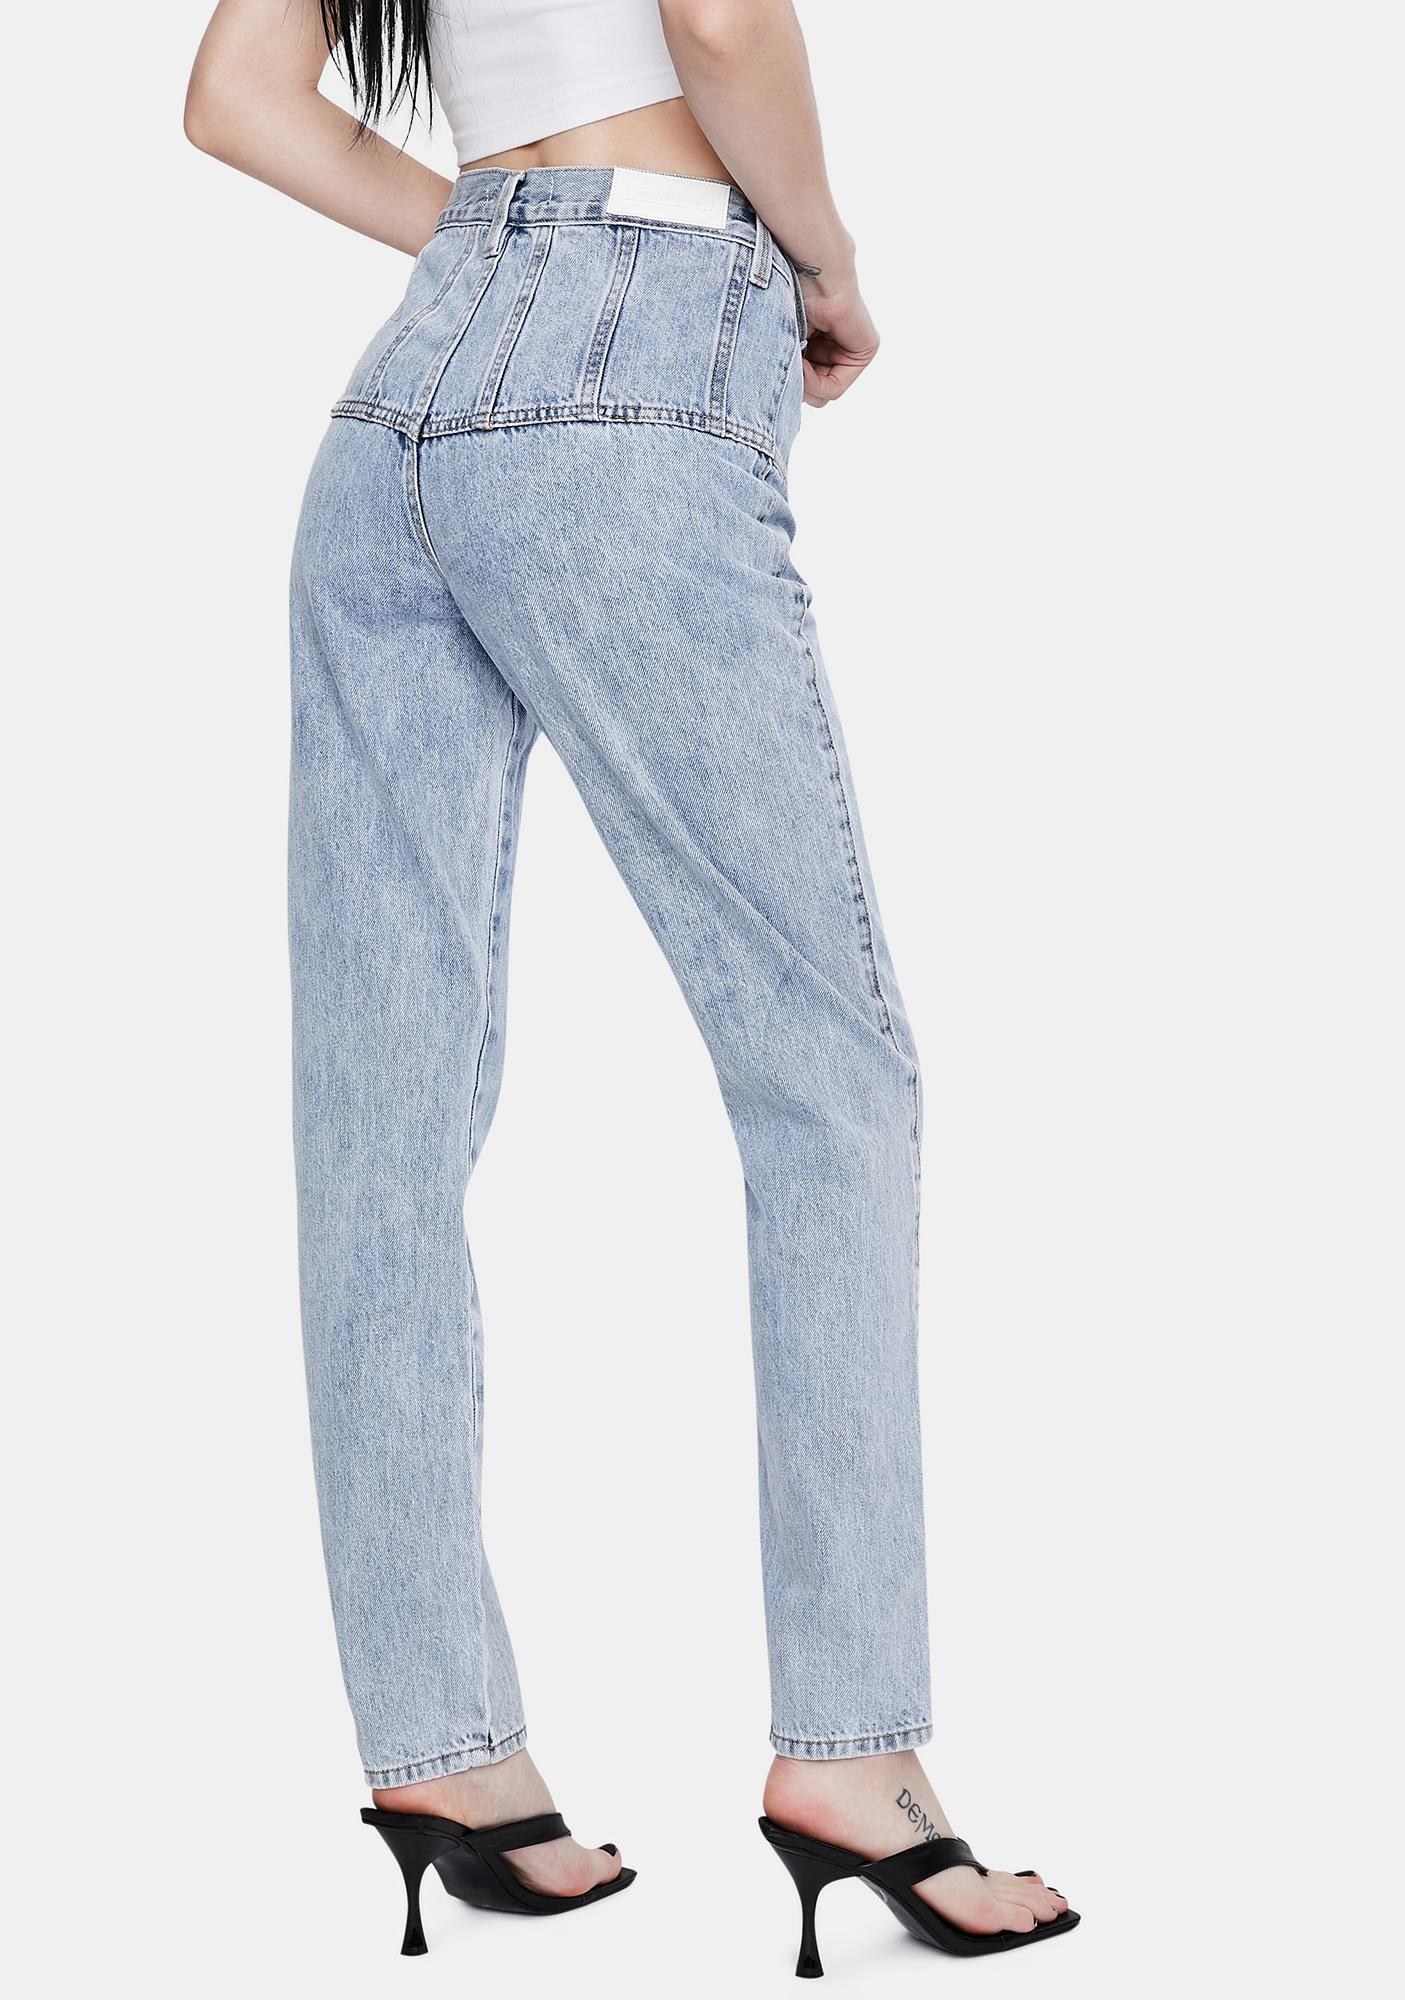 Neon Blonde Siren Tapered High Waist Jeans